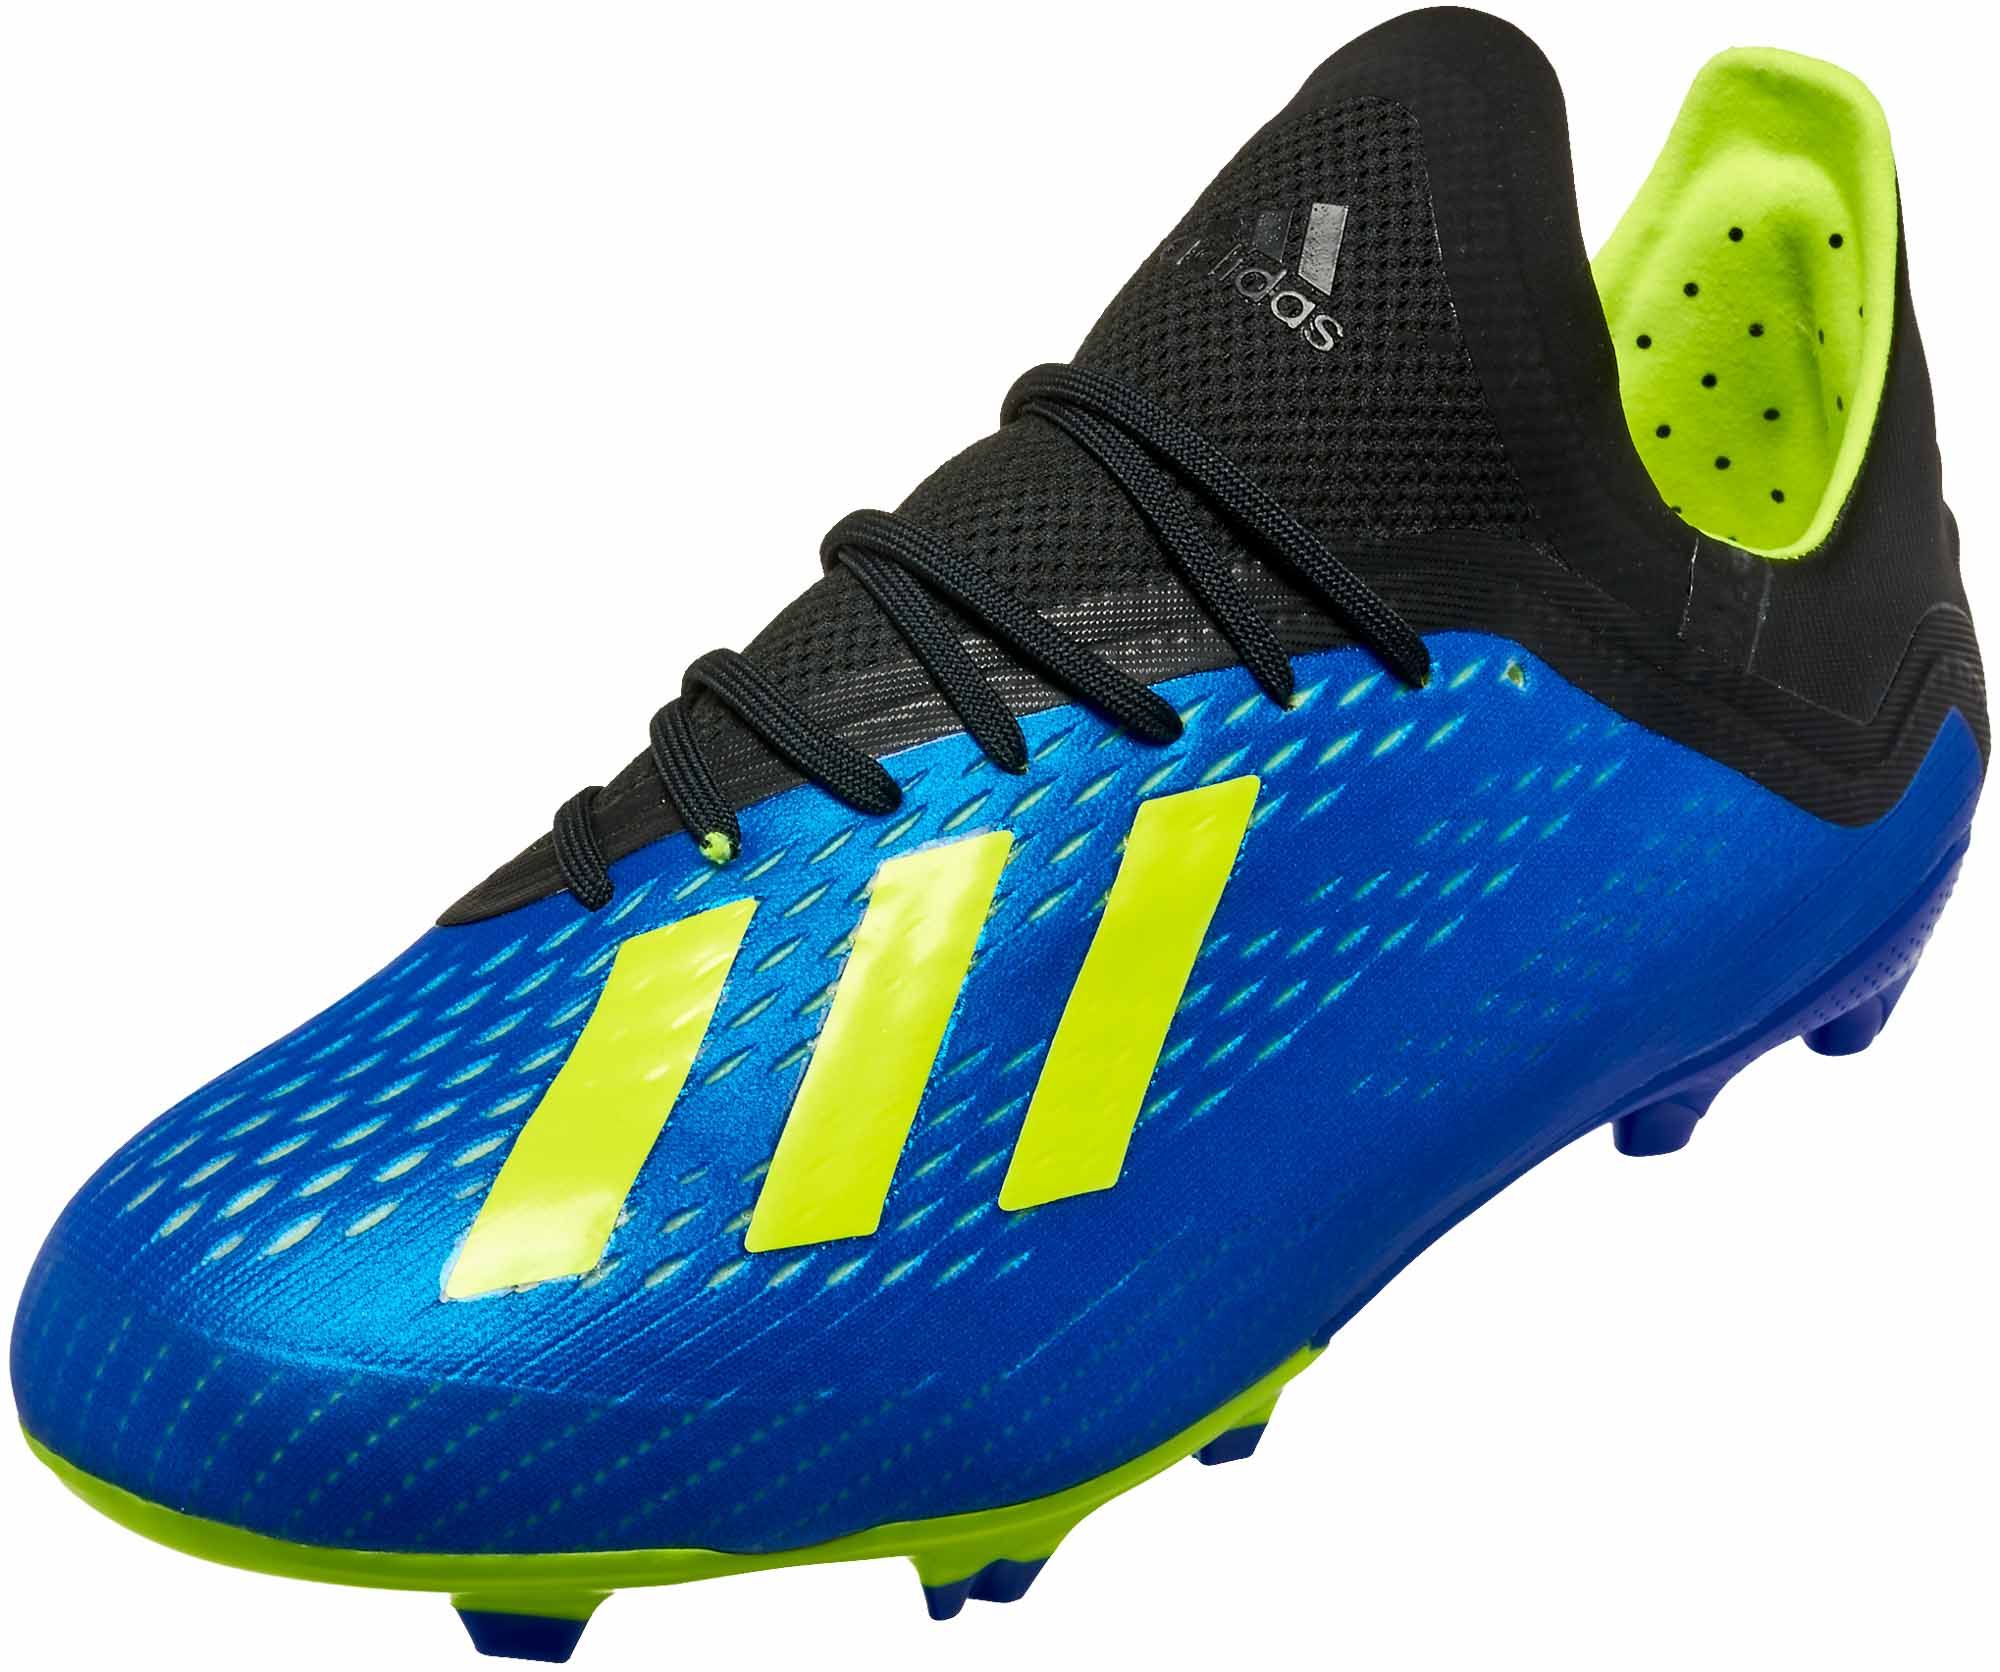 9b1364601ad adidas X 18.1 FG - Youth - Football Blue Solar Yellow Black - Soccer ...